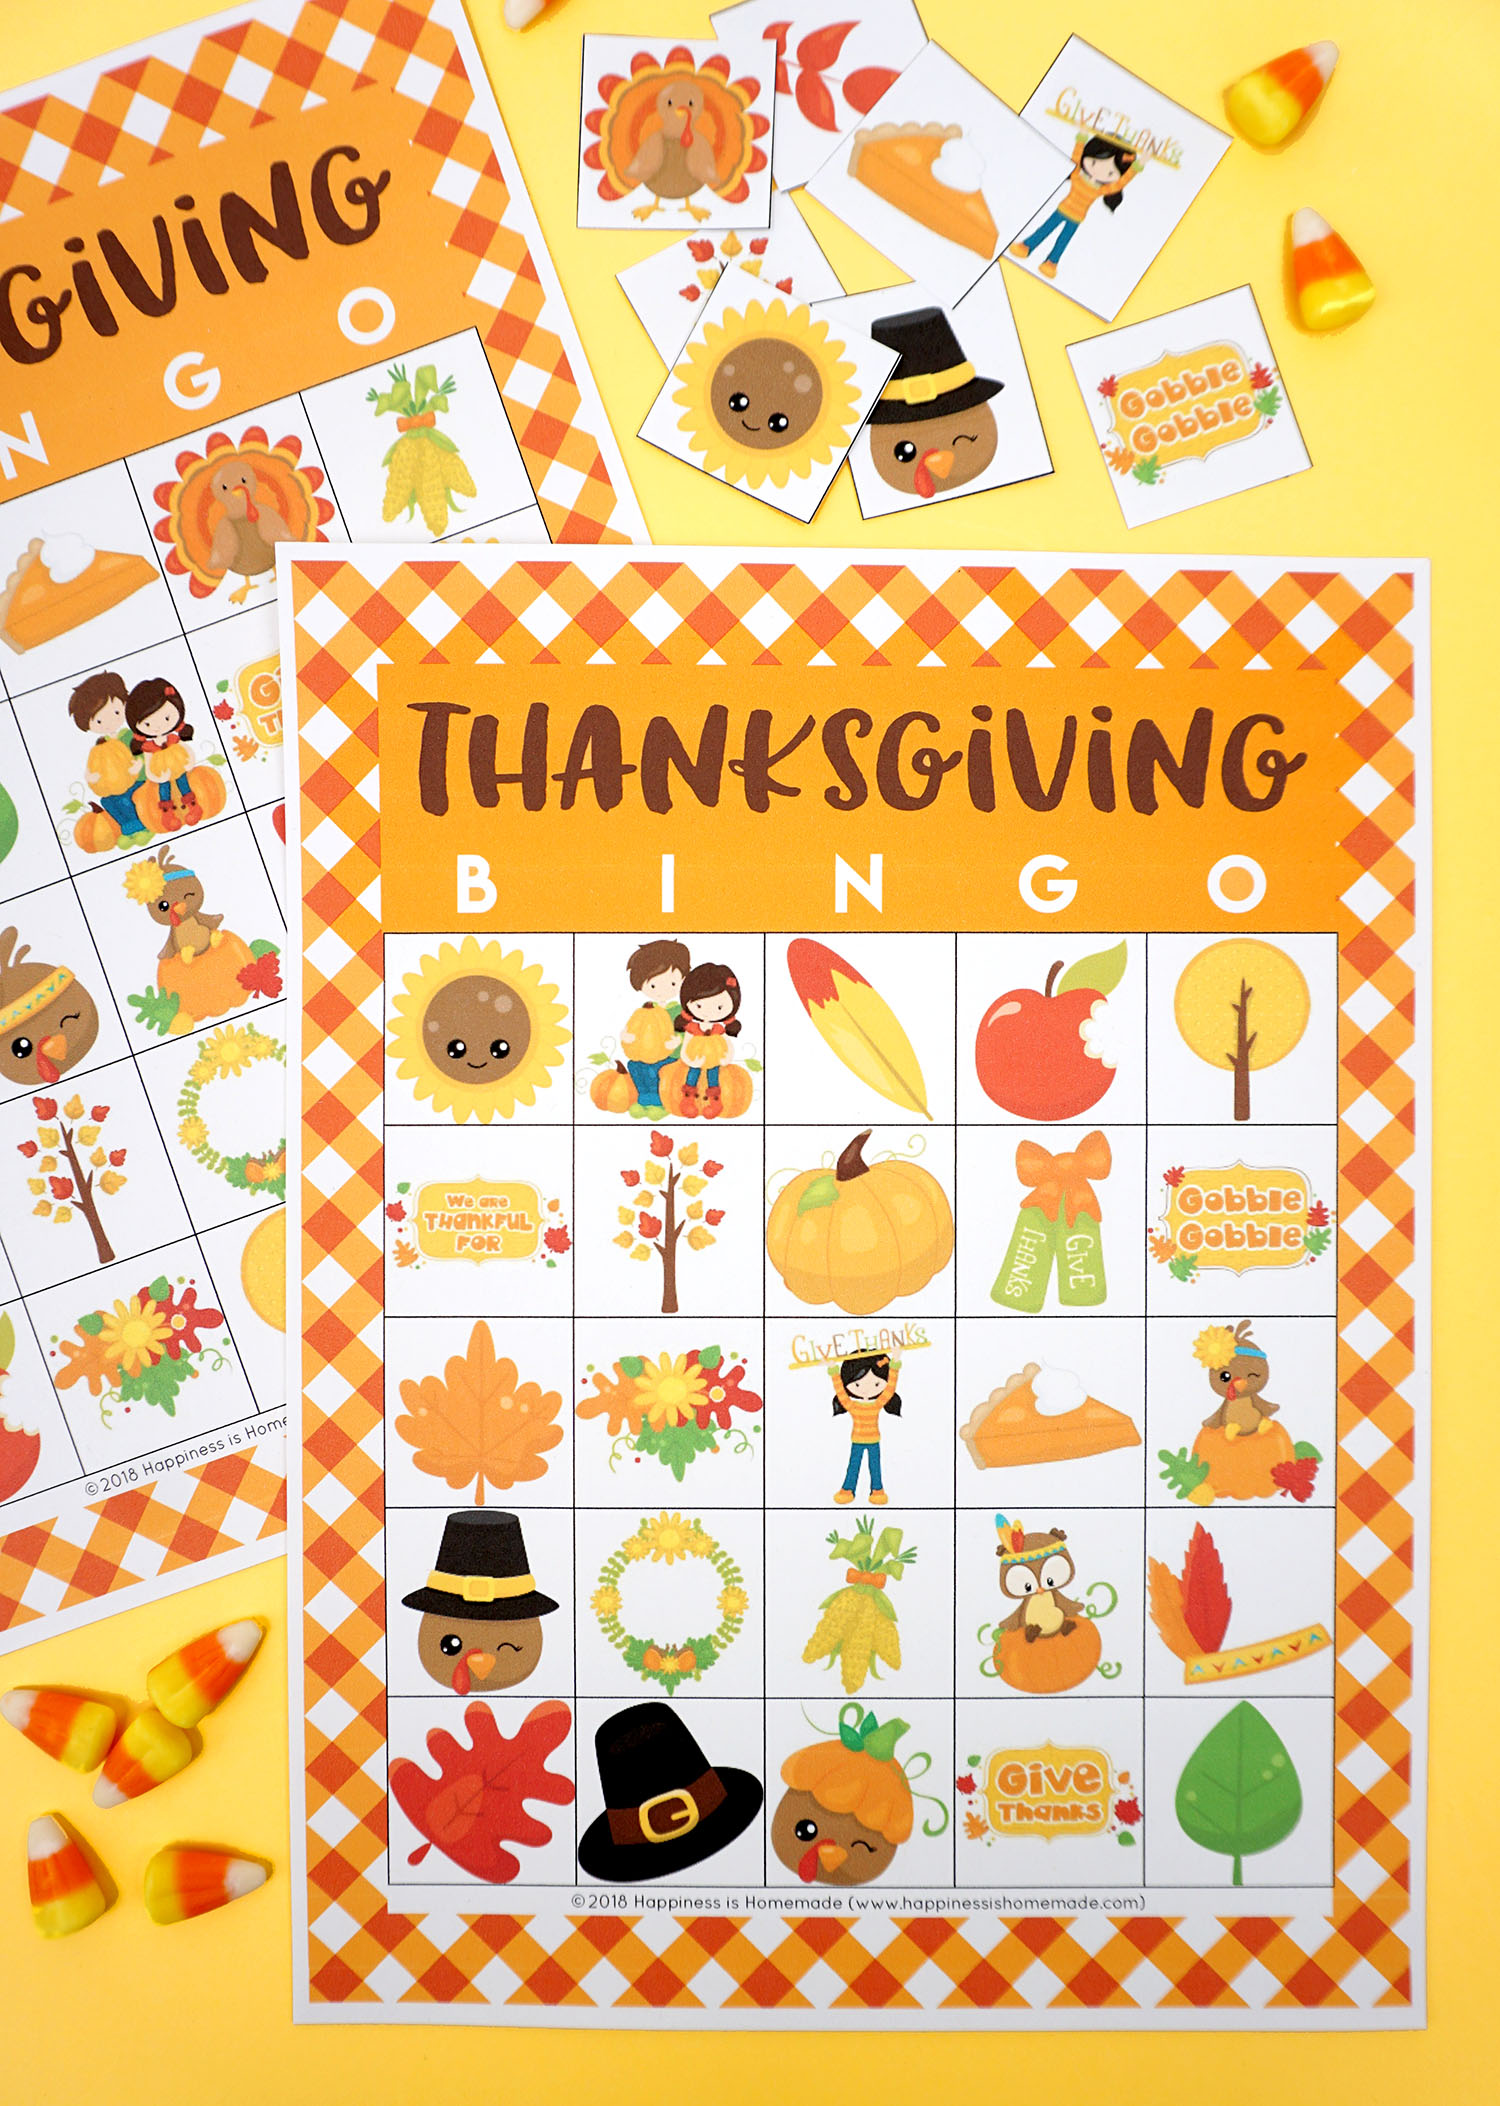 photo regarding Printable Thanksgiving Cards referred to as Totally free Printable Thanksgiving Bingo Playing cards - Contentment is Selfmade